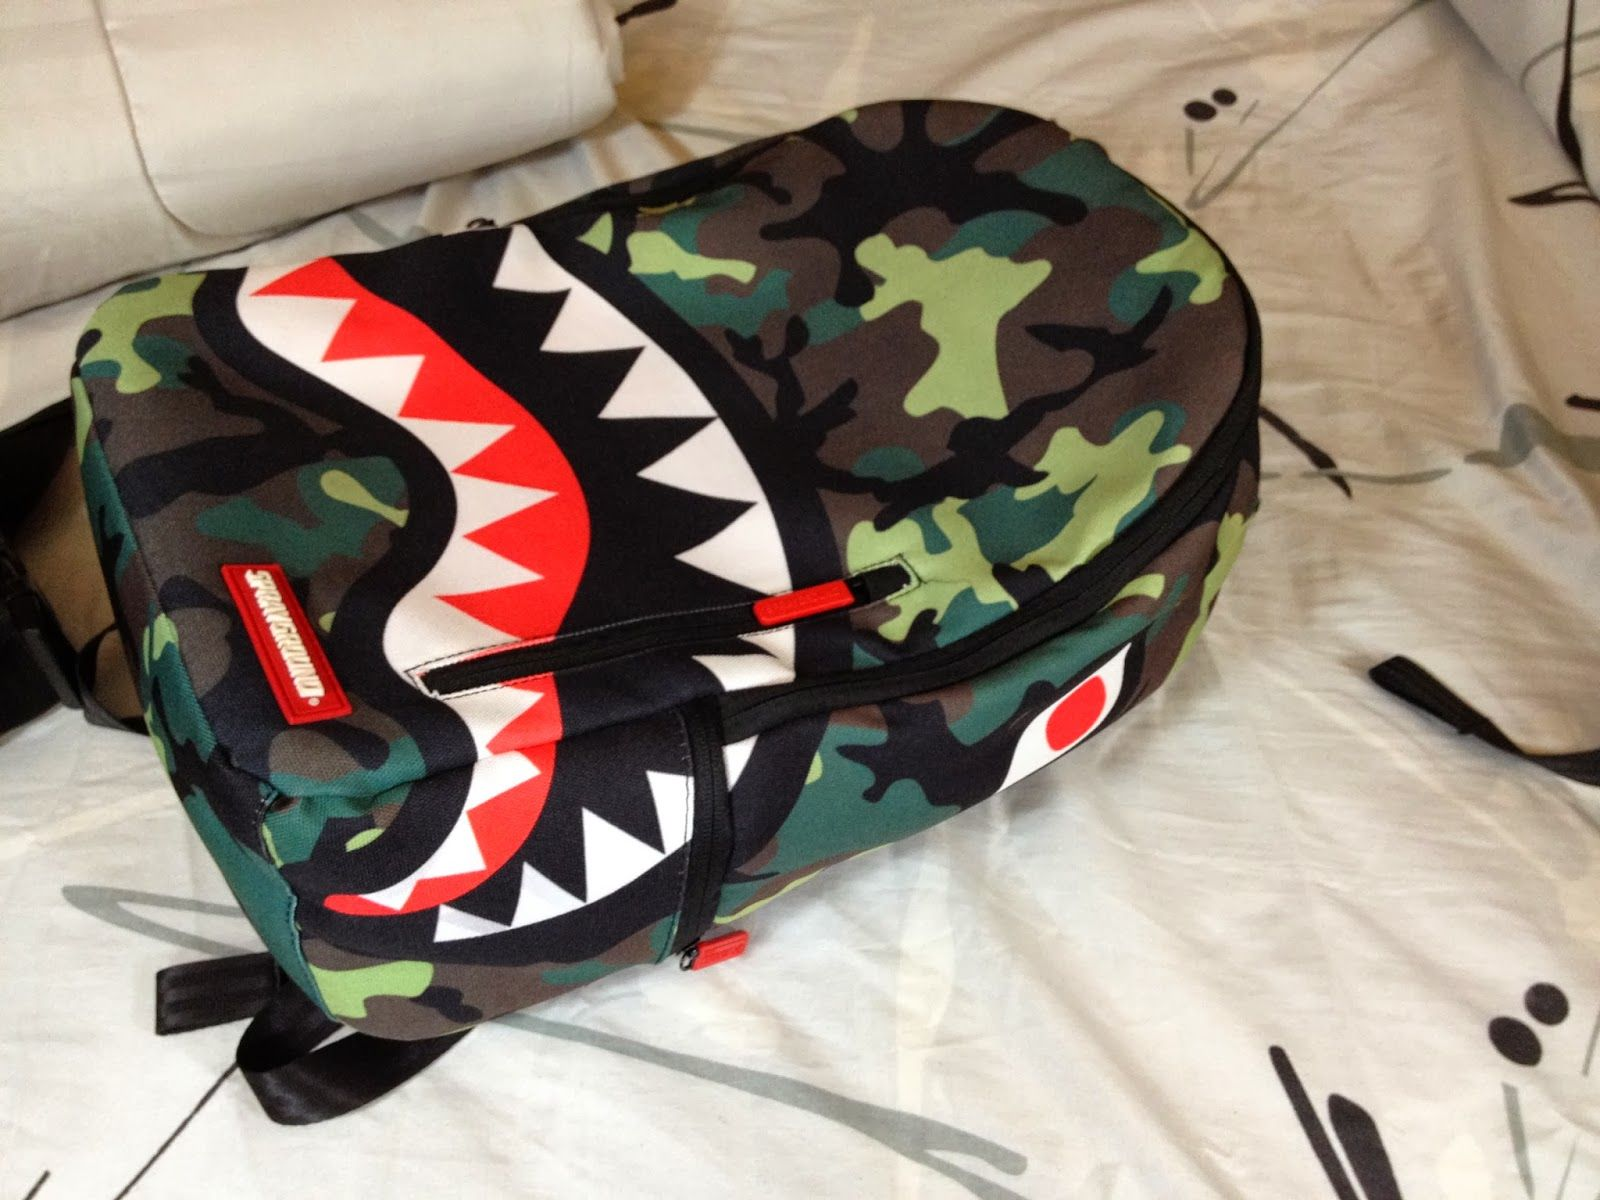 Bape Shark Backpack >> Bape Shark Bag Google Search Swag Clothes Bape Bape Outfits